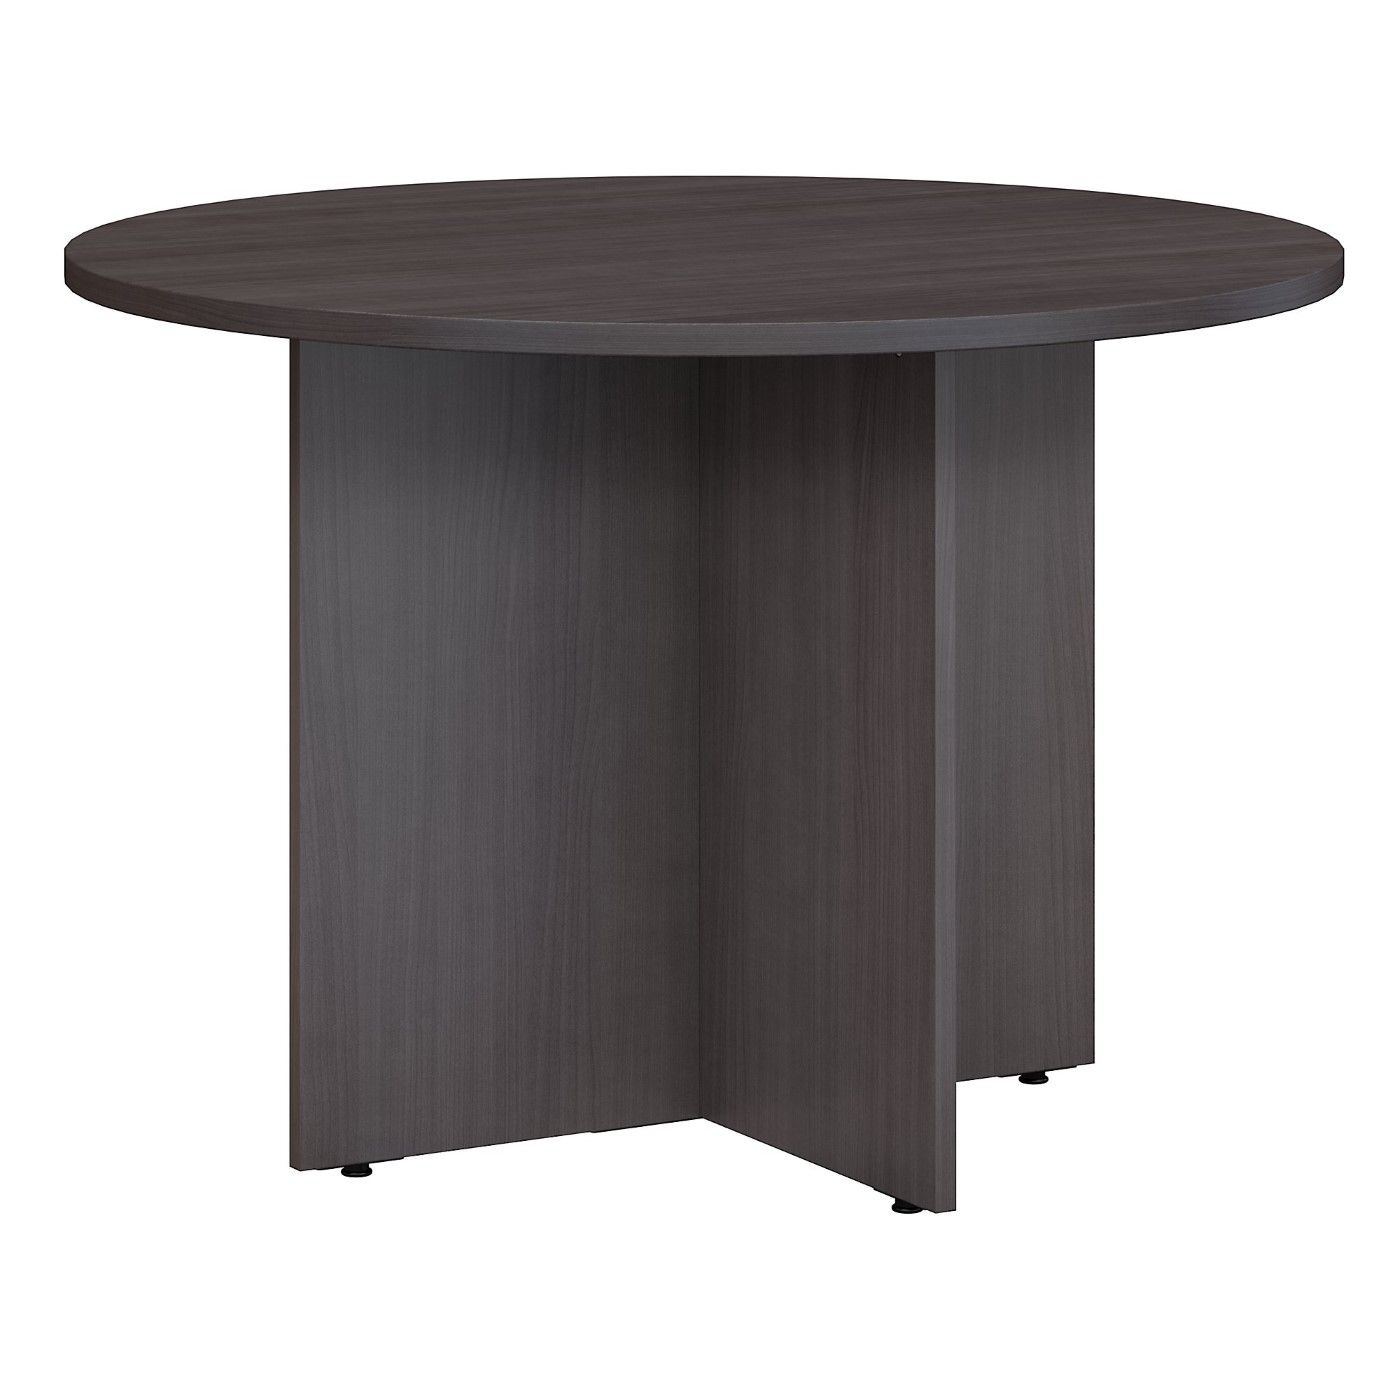 BUSH BUSINESS FURNITURE 42W ROUND CONFERENCE TABLE WITH WOOD BASE. FREE SHIPPING